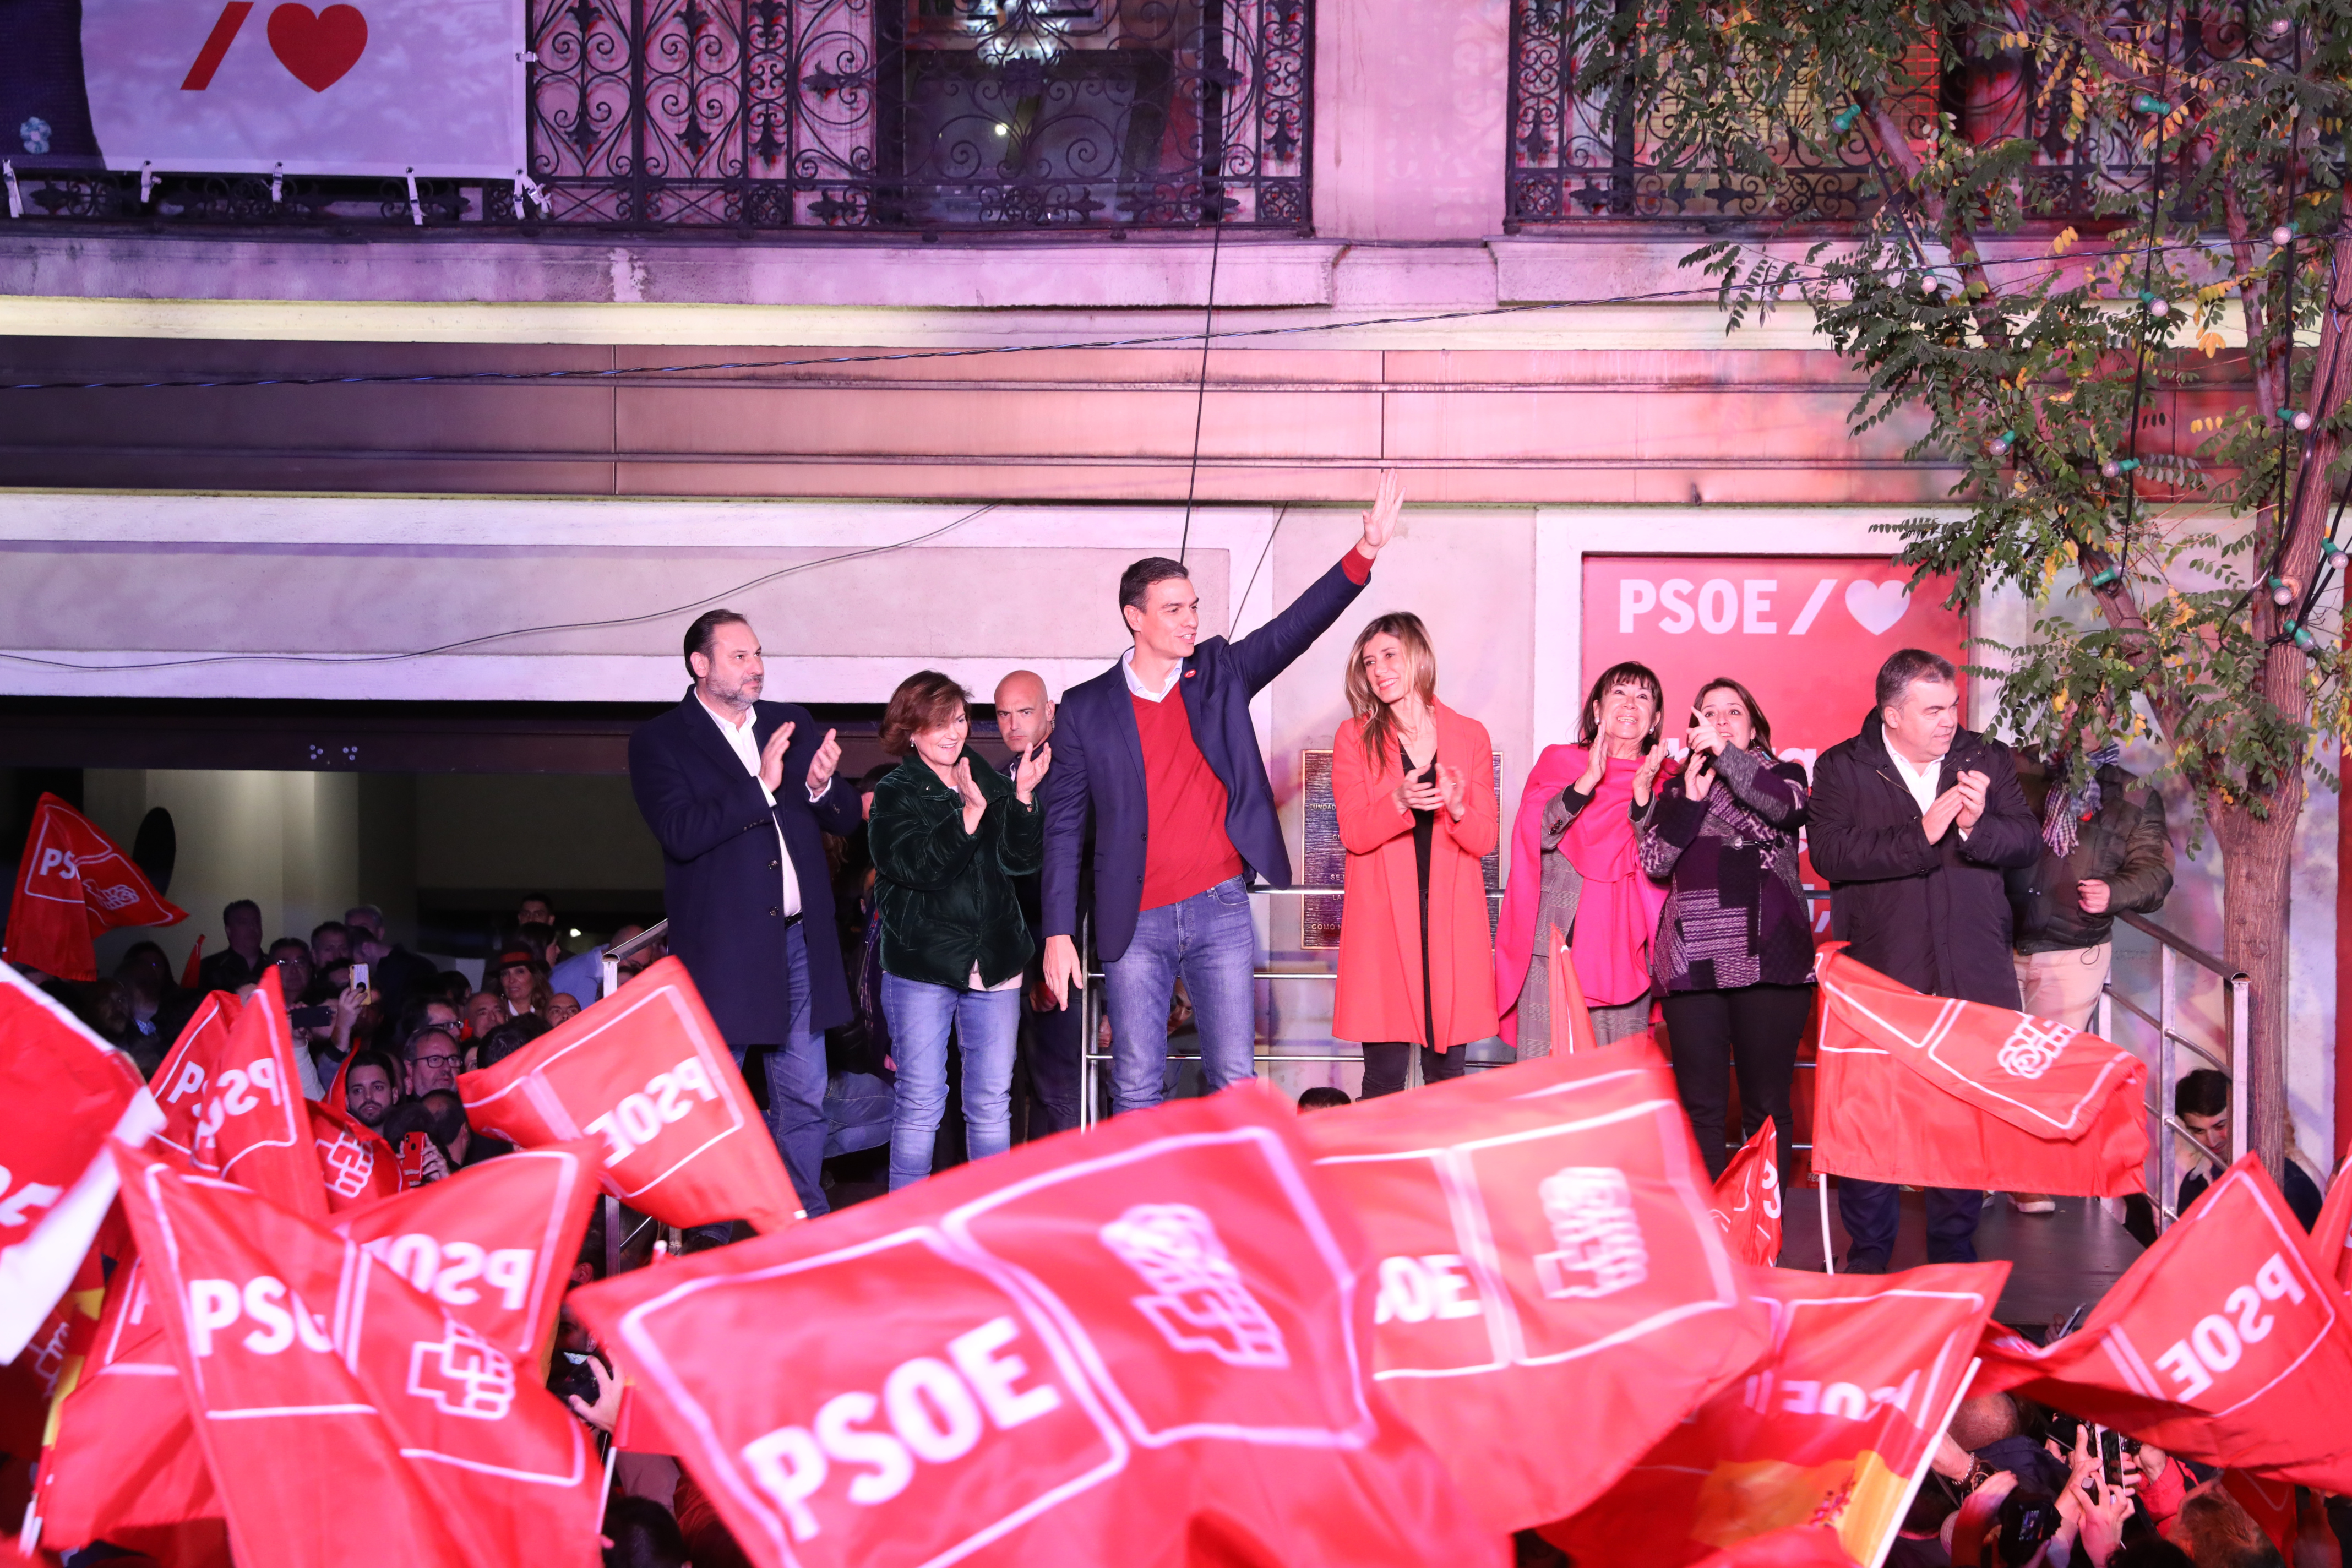 Pedro Sánchez celebrates his victory in the Spanish election at the Socialist party's headquarters in Madrid (by ACN)